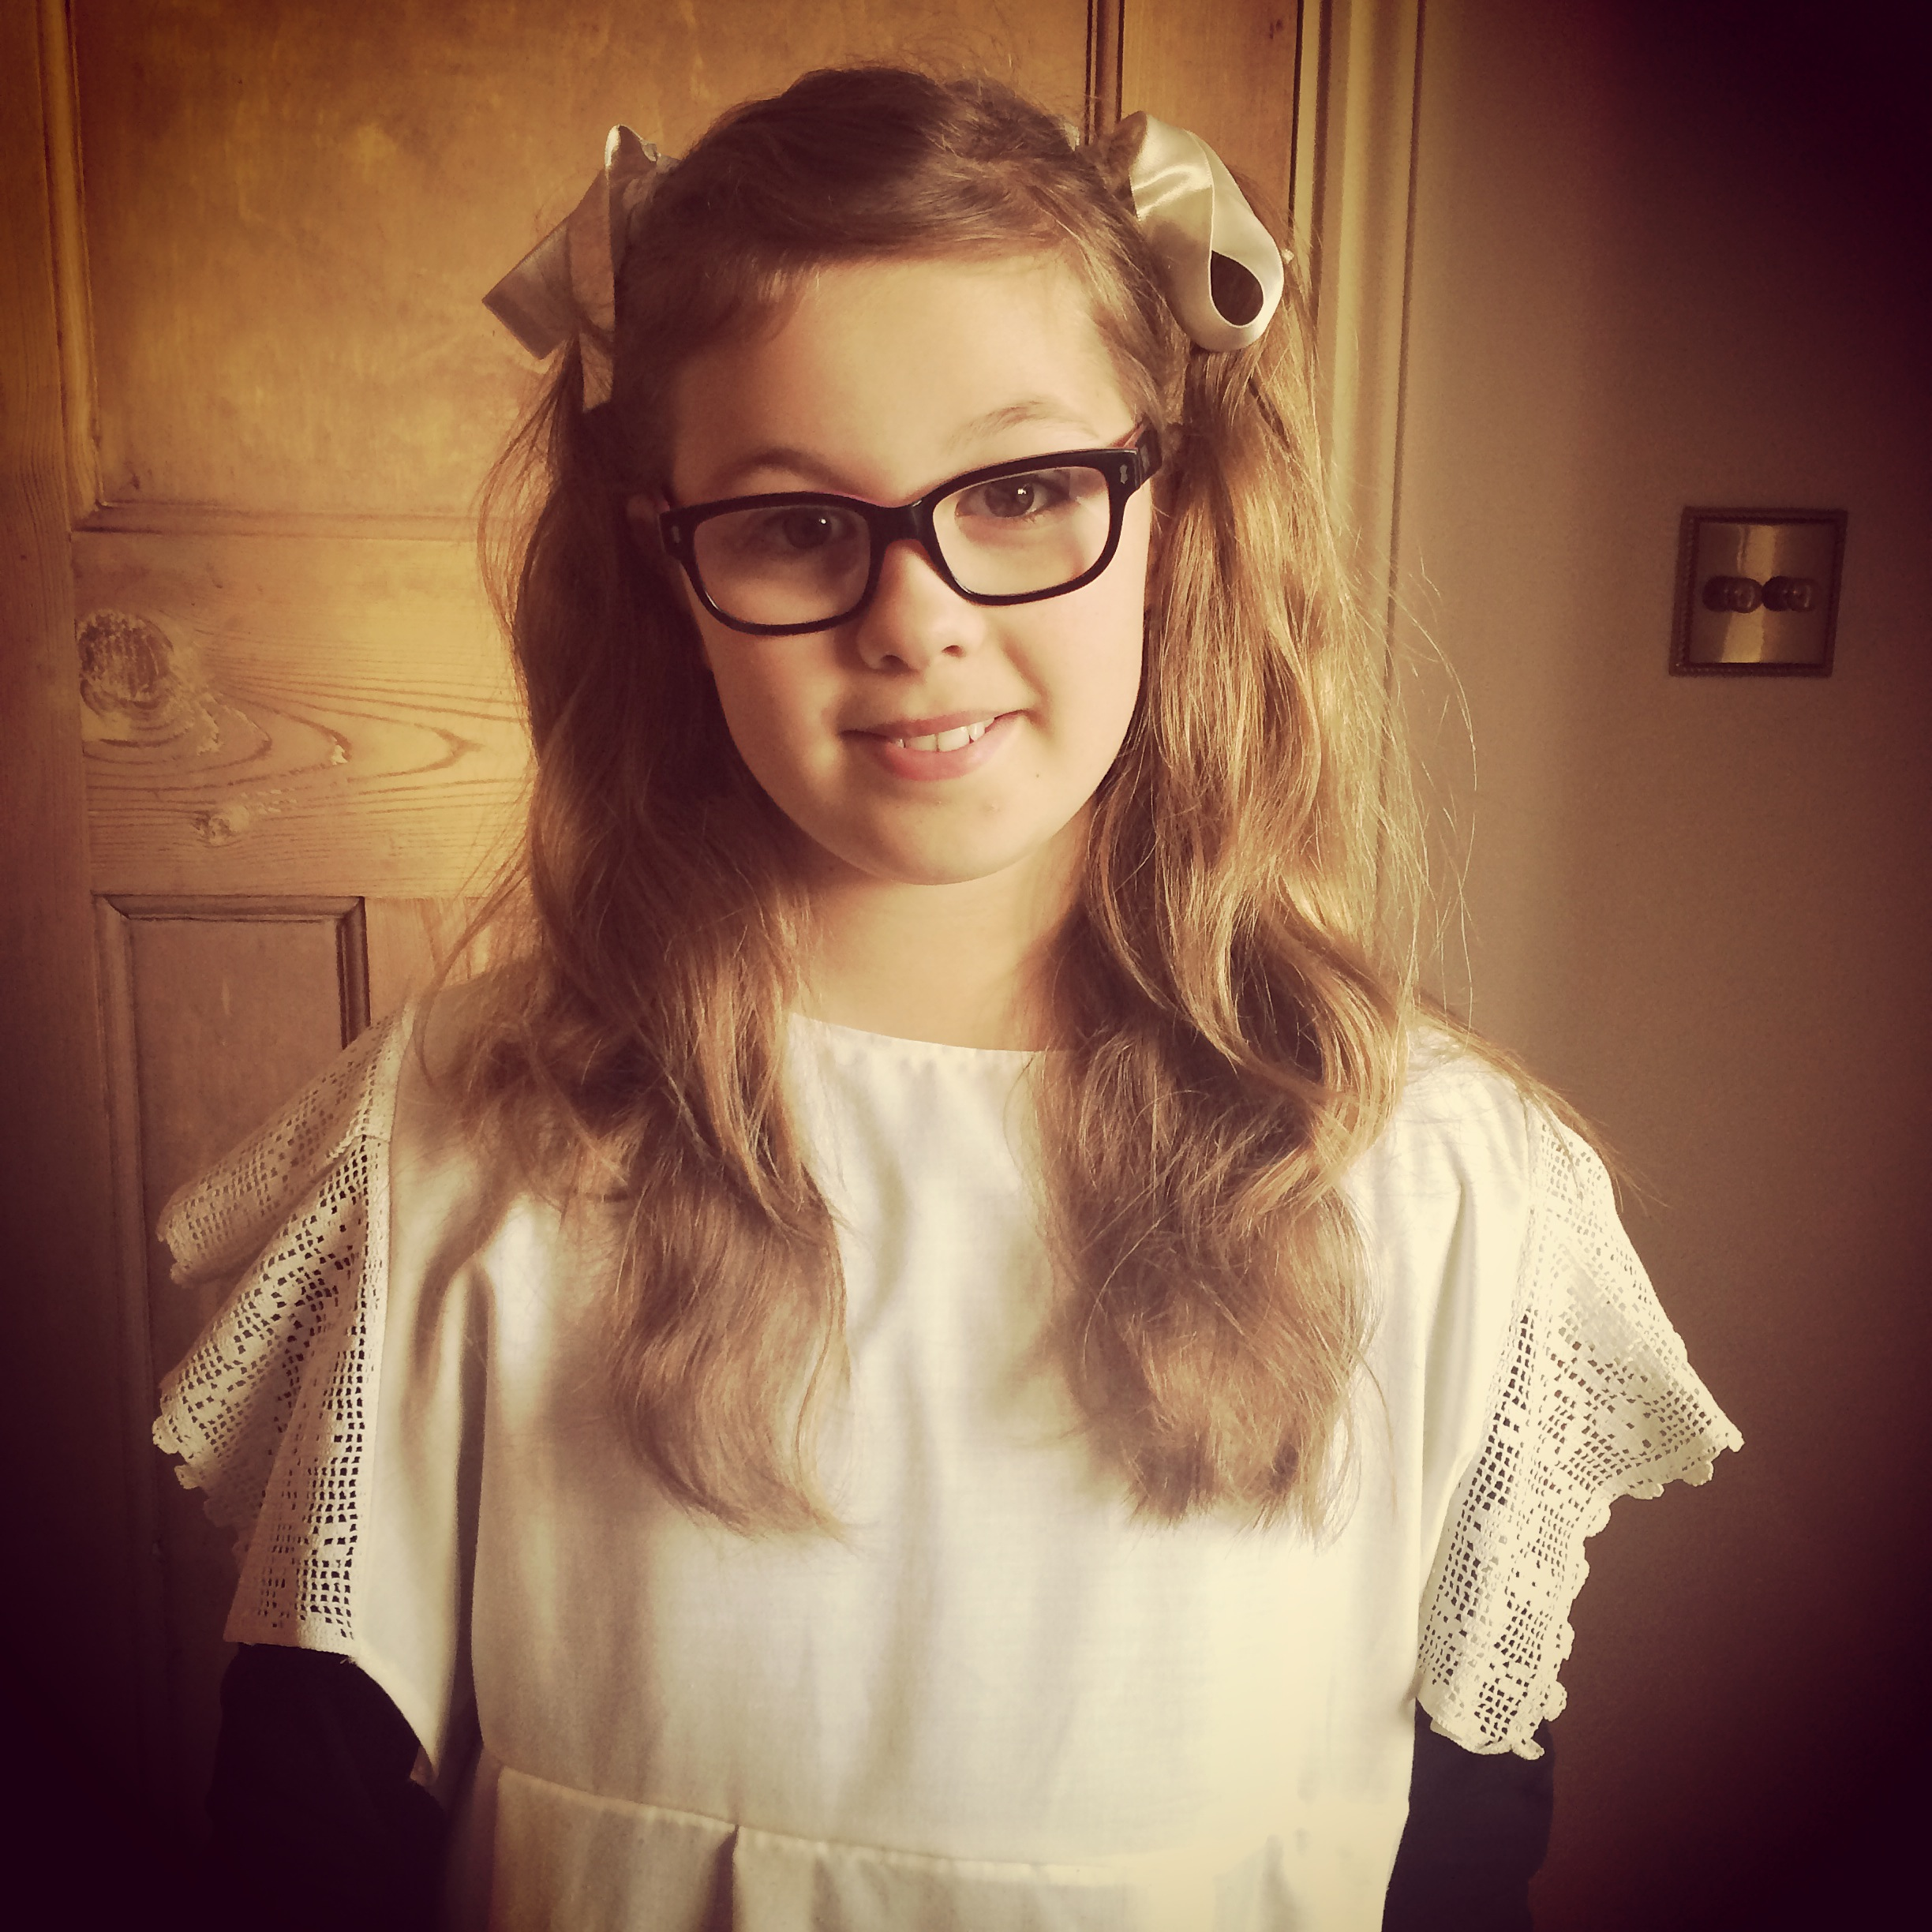 Our daughter Amber dressed as a Victorian schoolgirl for her school trip in the outfit I made.